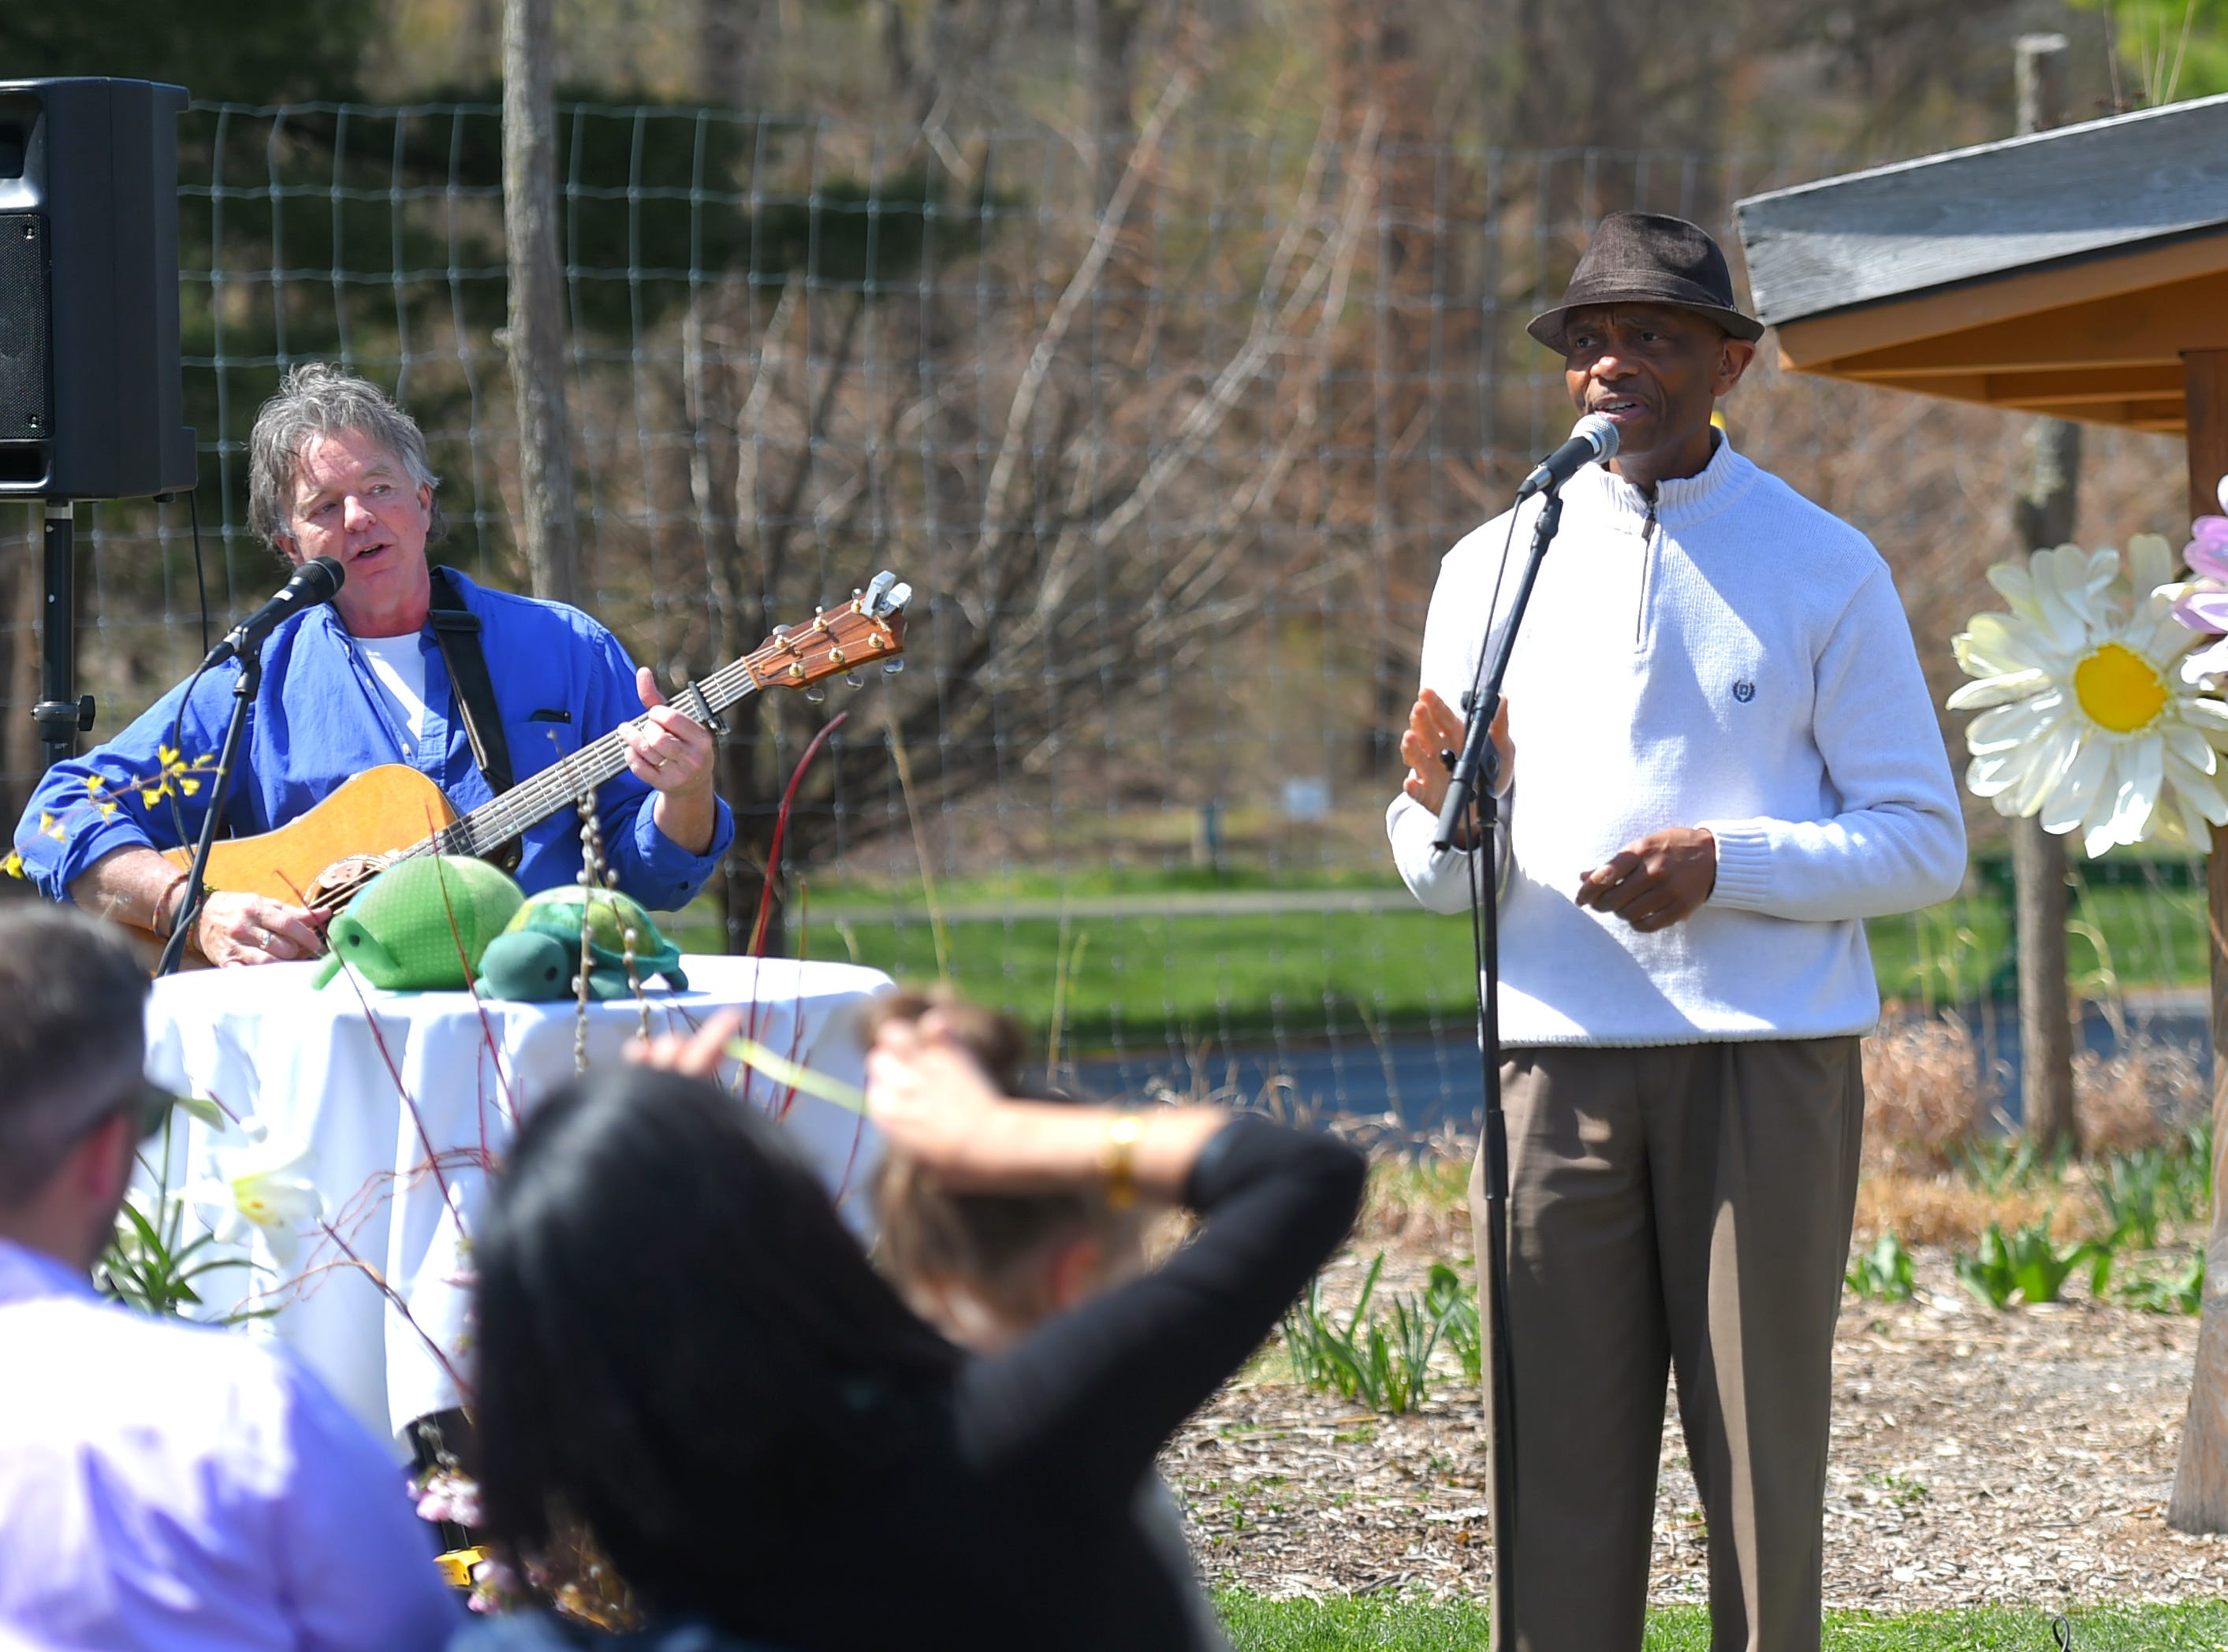 John Simon and Cal Walker sing during the celebration of life honoring Kathleen Downes at the Ithaca Children's Garden on April 17, 2019. Downes, a beloved Ithaca teacher, died unexpectedly last week in a car accident.